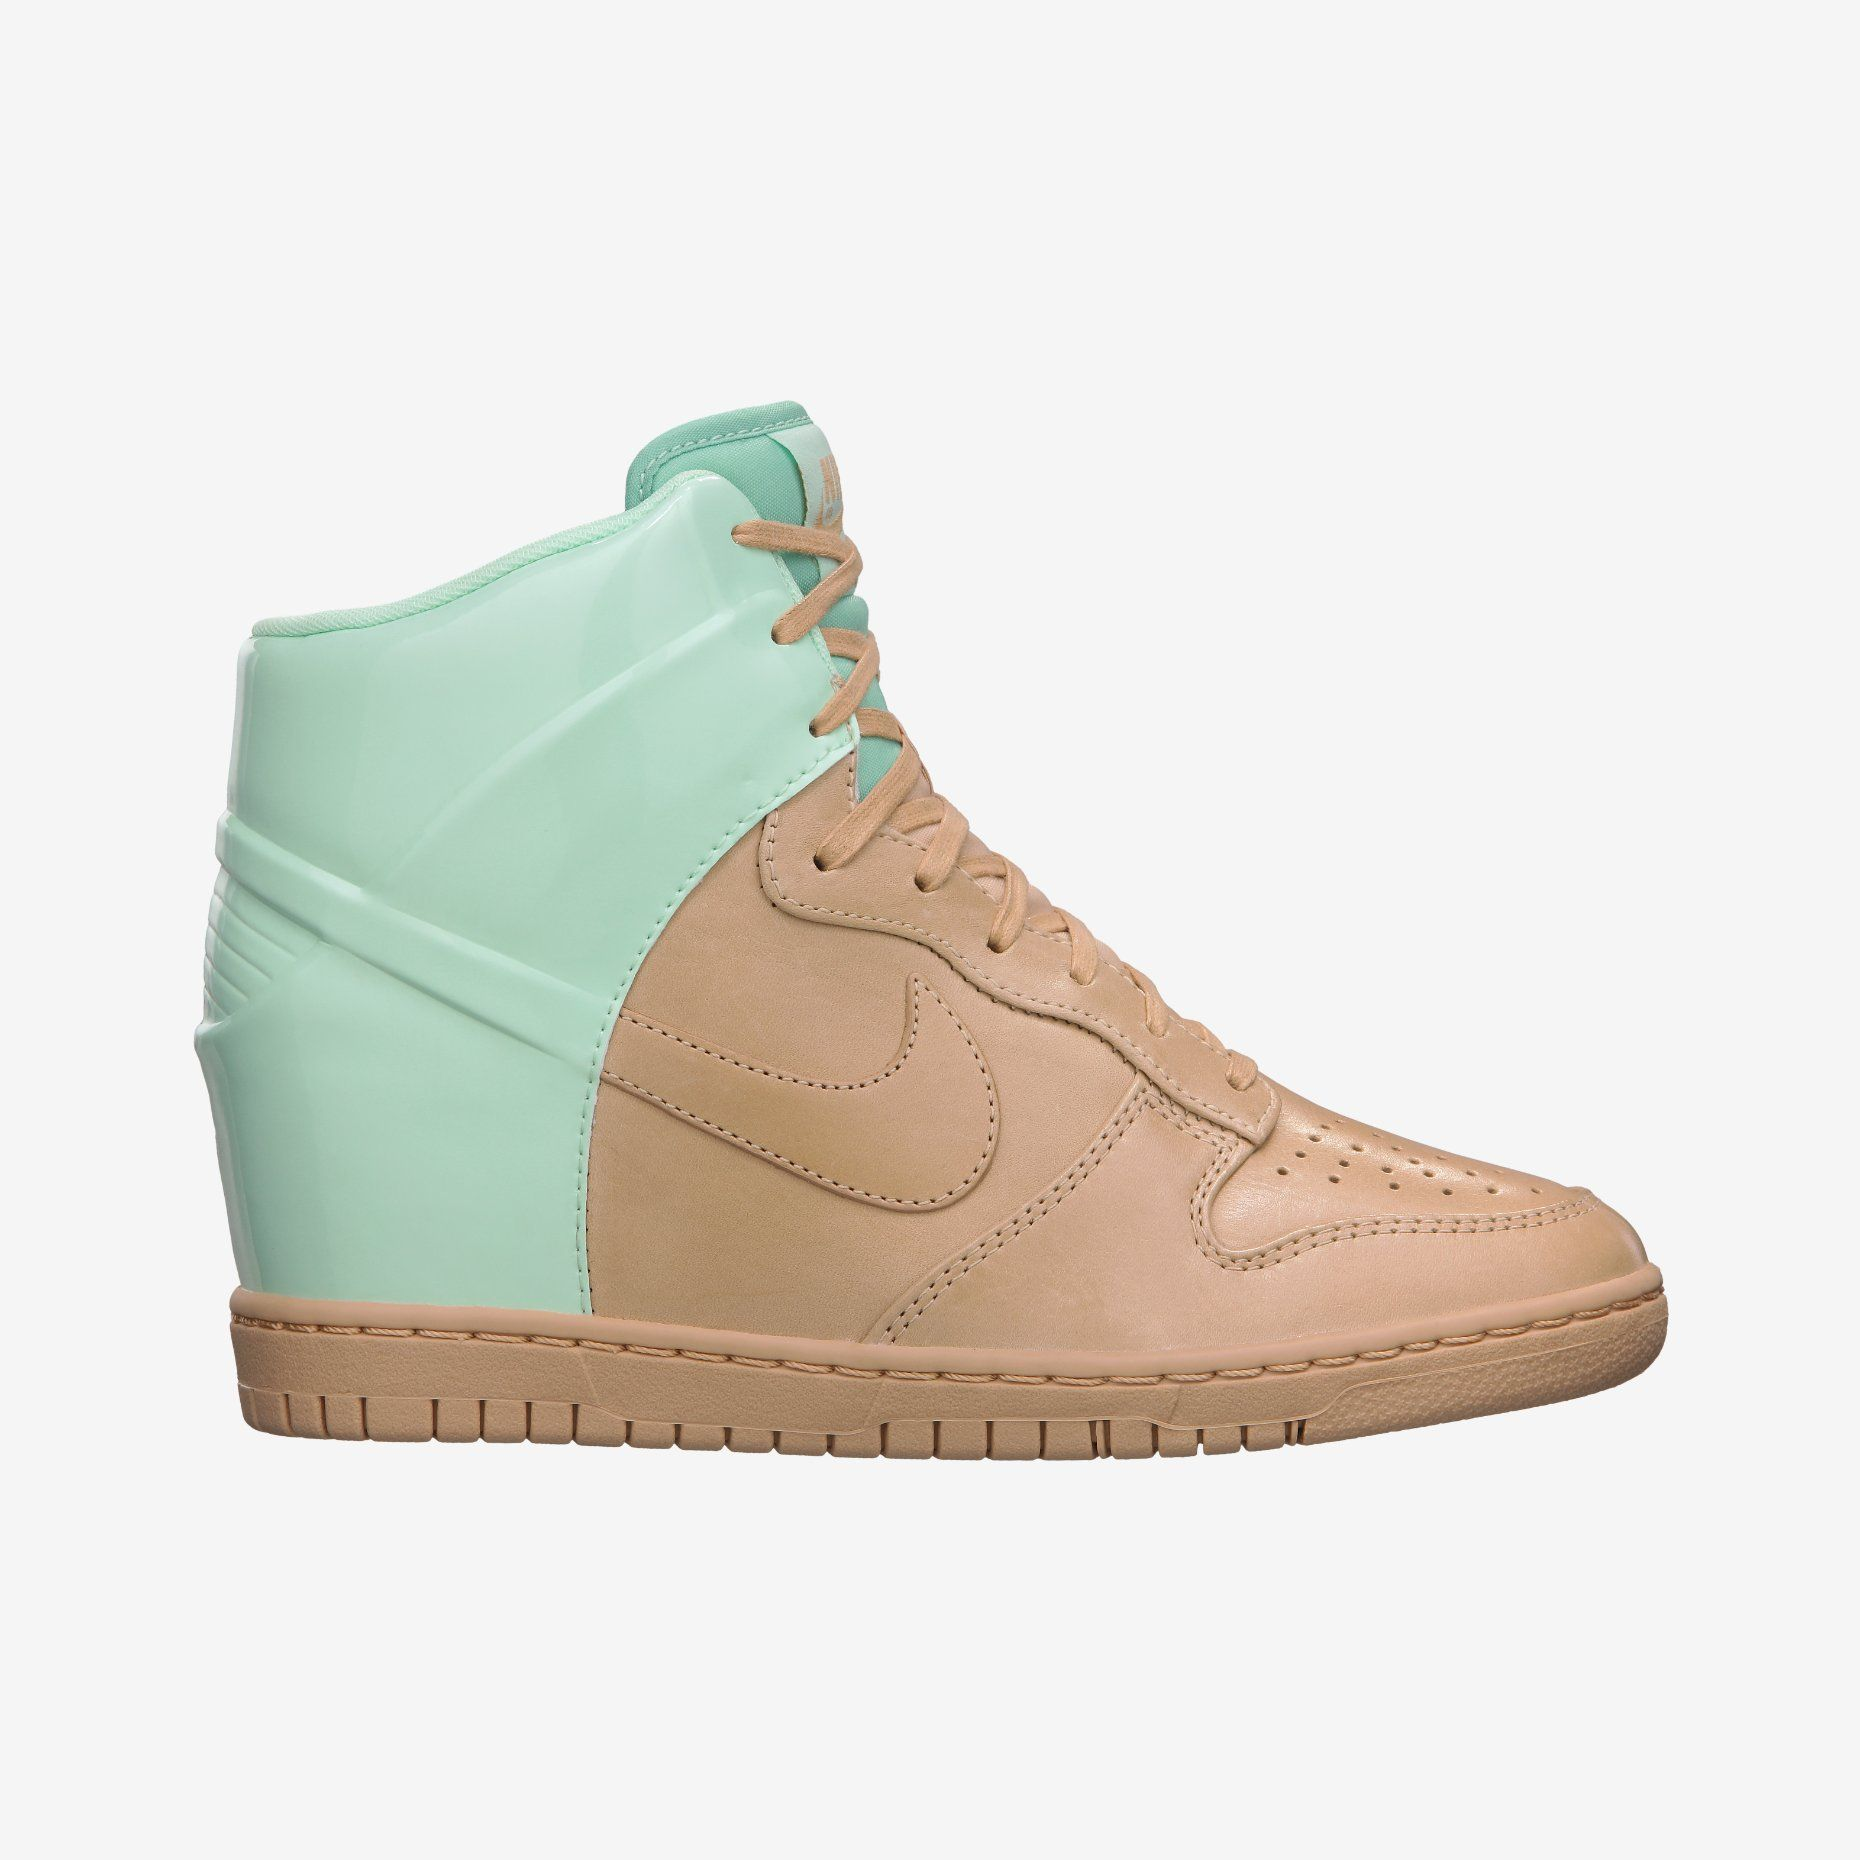 quality design df7d7 b7dcb Nike Dunk Sky Hi Vac Tech Women s Shoe